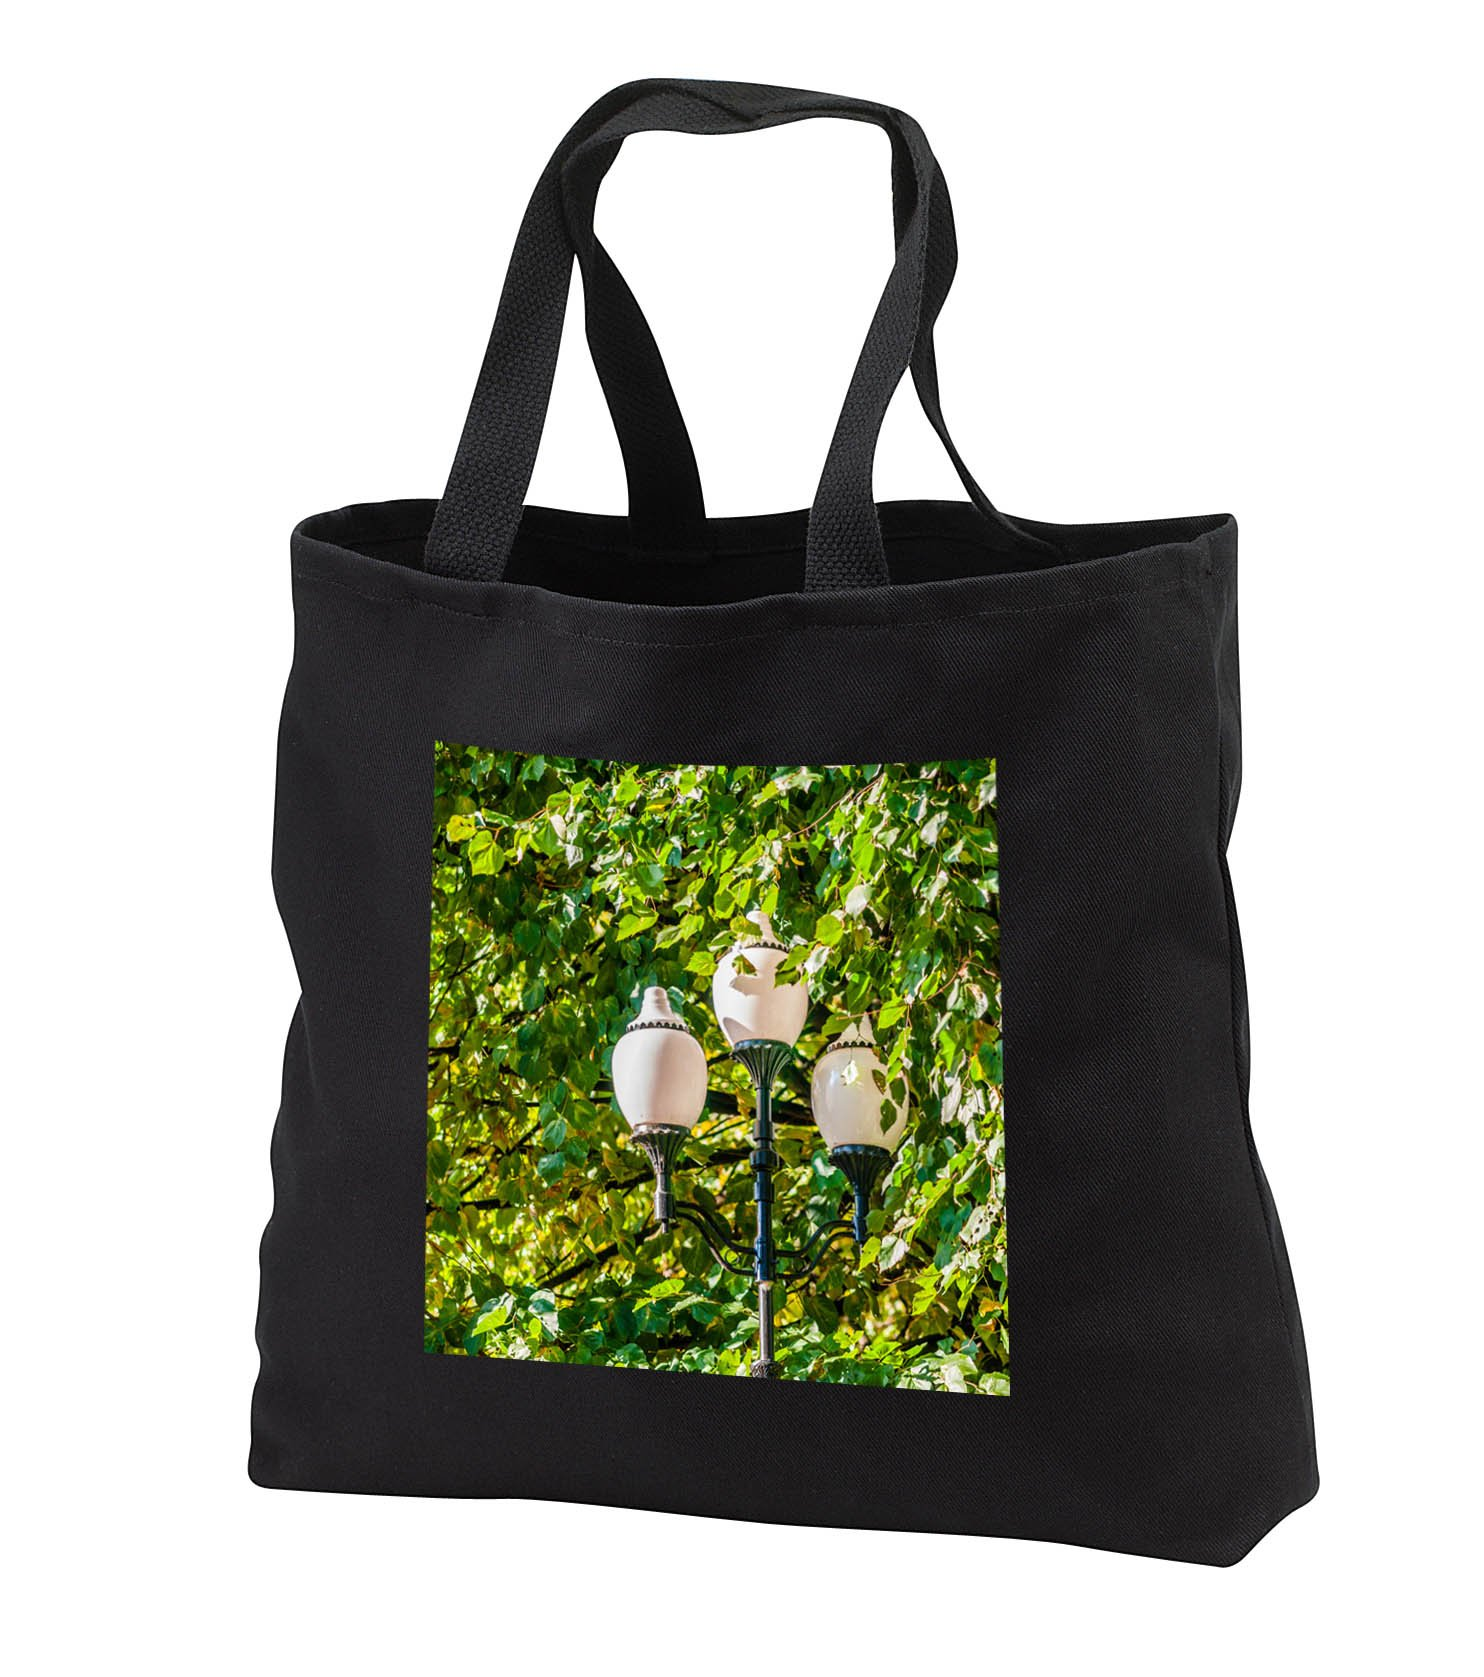 Alexis Photography - Objects - Street lamp with three white glass bulbs inside lime tree foliage - Tote Bags - Black Tote Bag JUMBO 20w x 15h x 5d (tb_283762_3)